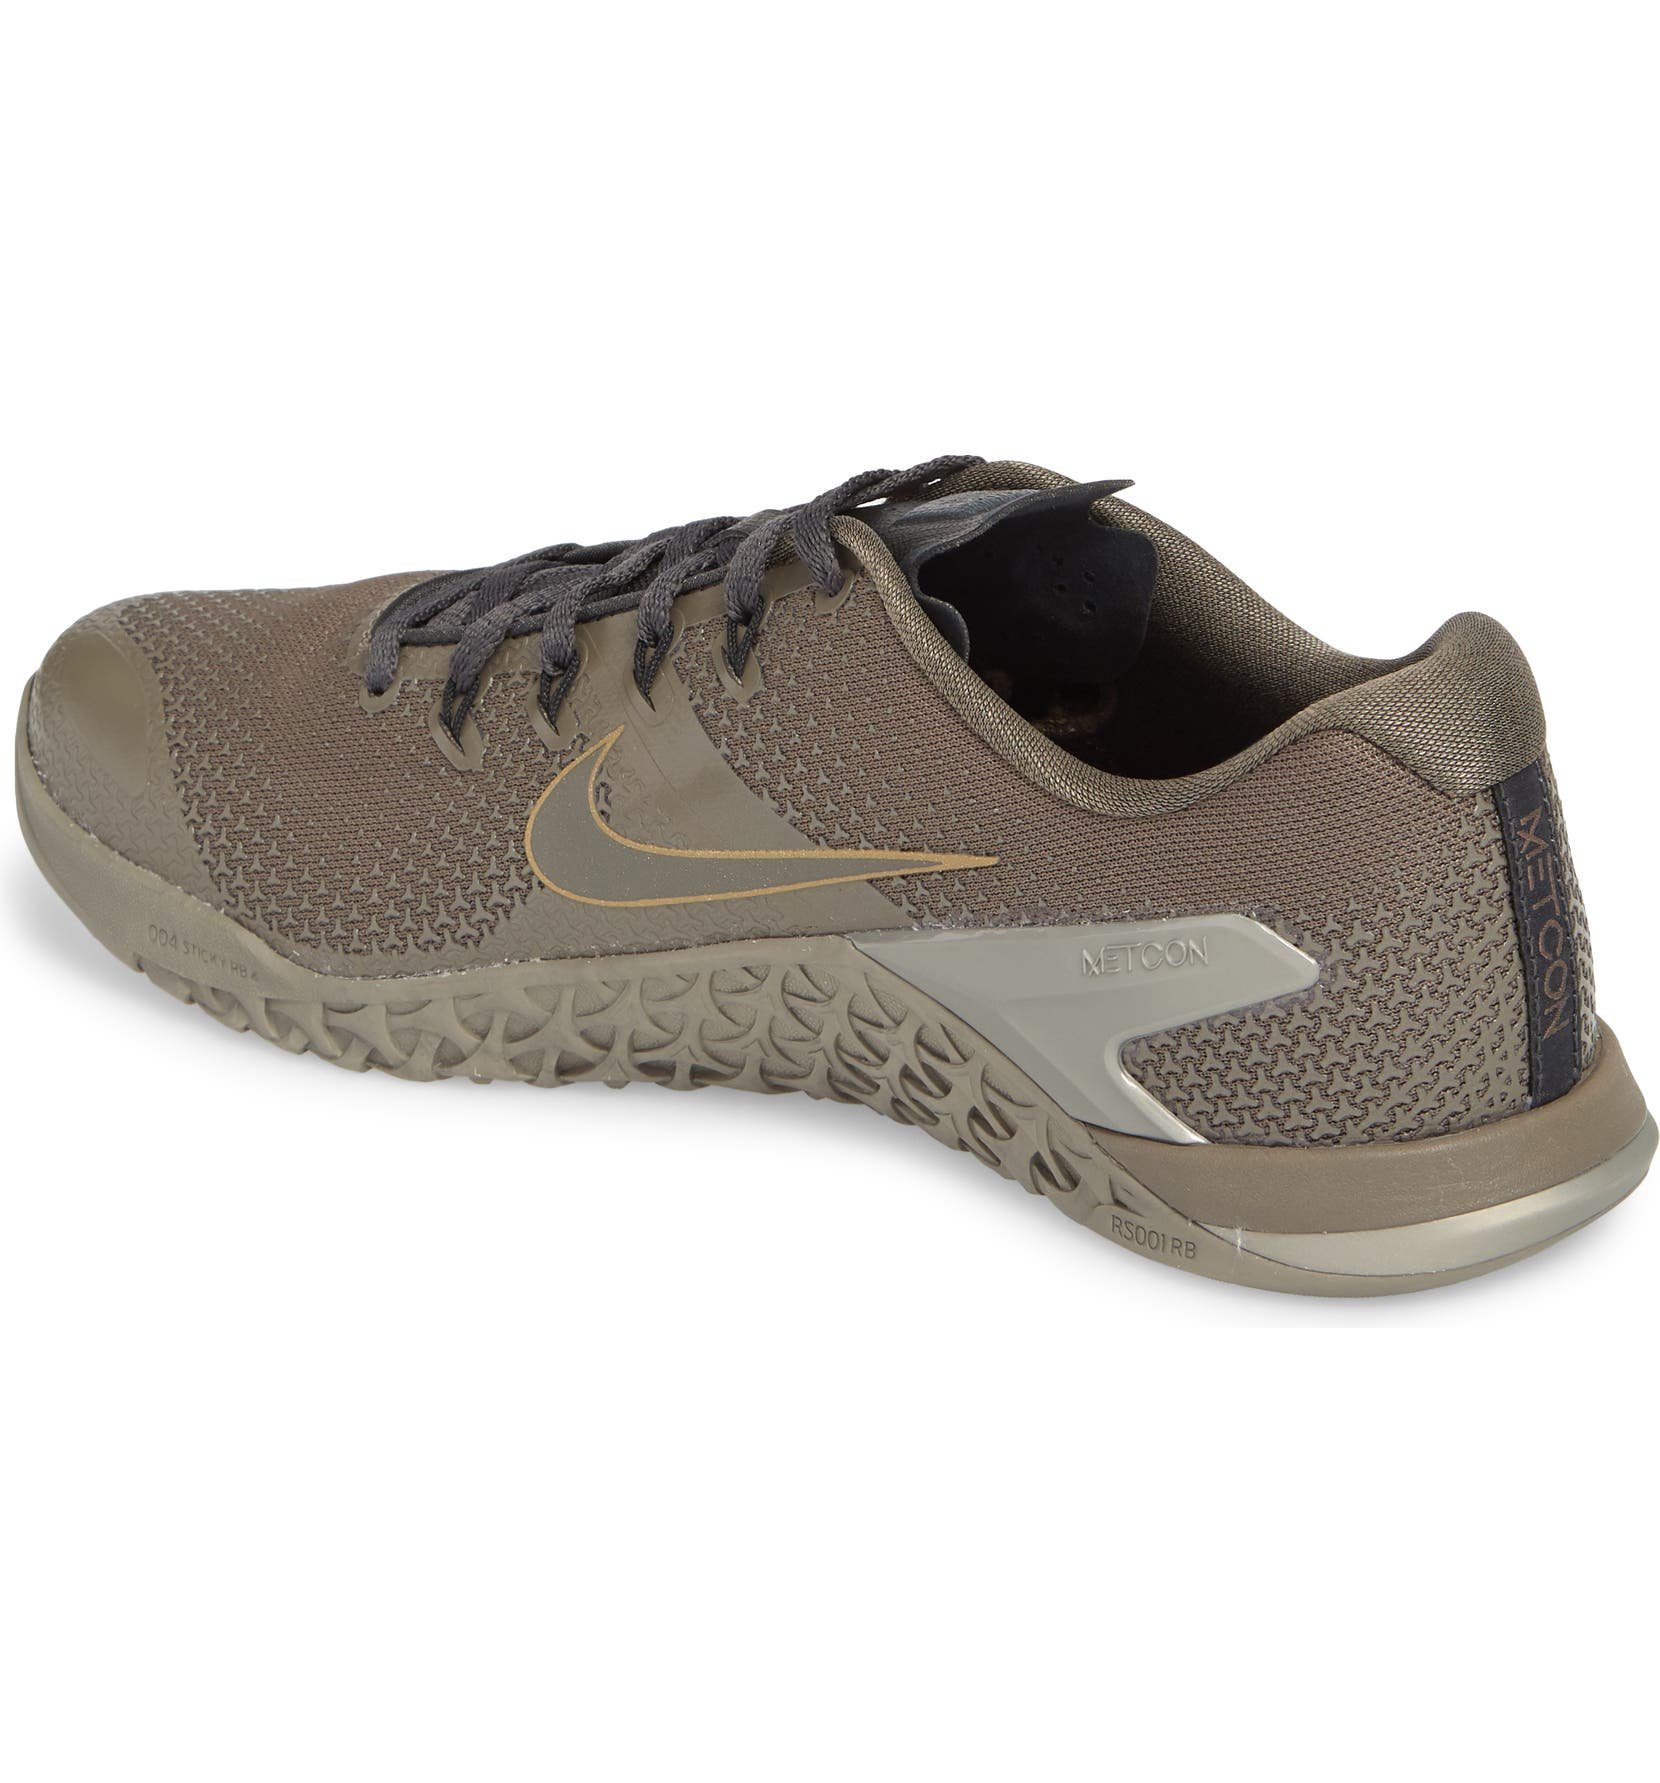 size 40 ceed7 cc819 Nike Metcon 4 Viking Quest Training Shoe (Men)  Nordstrom